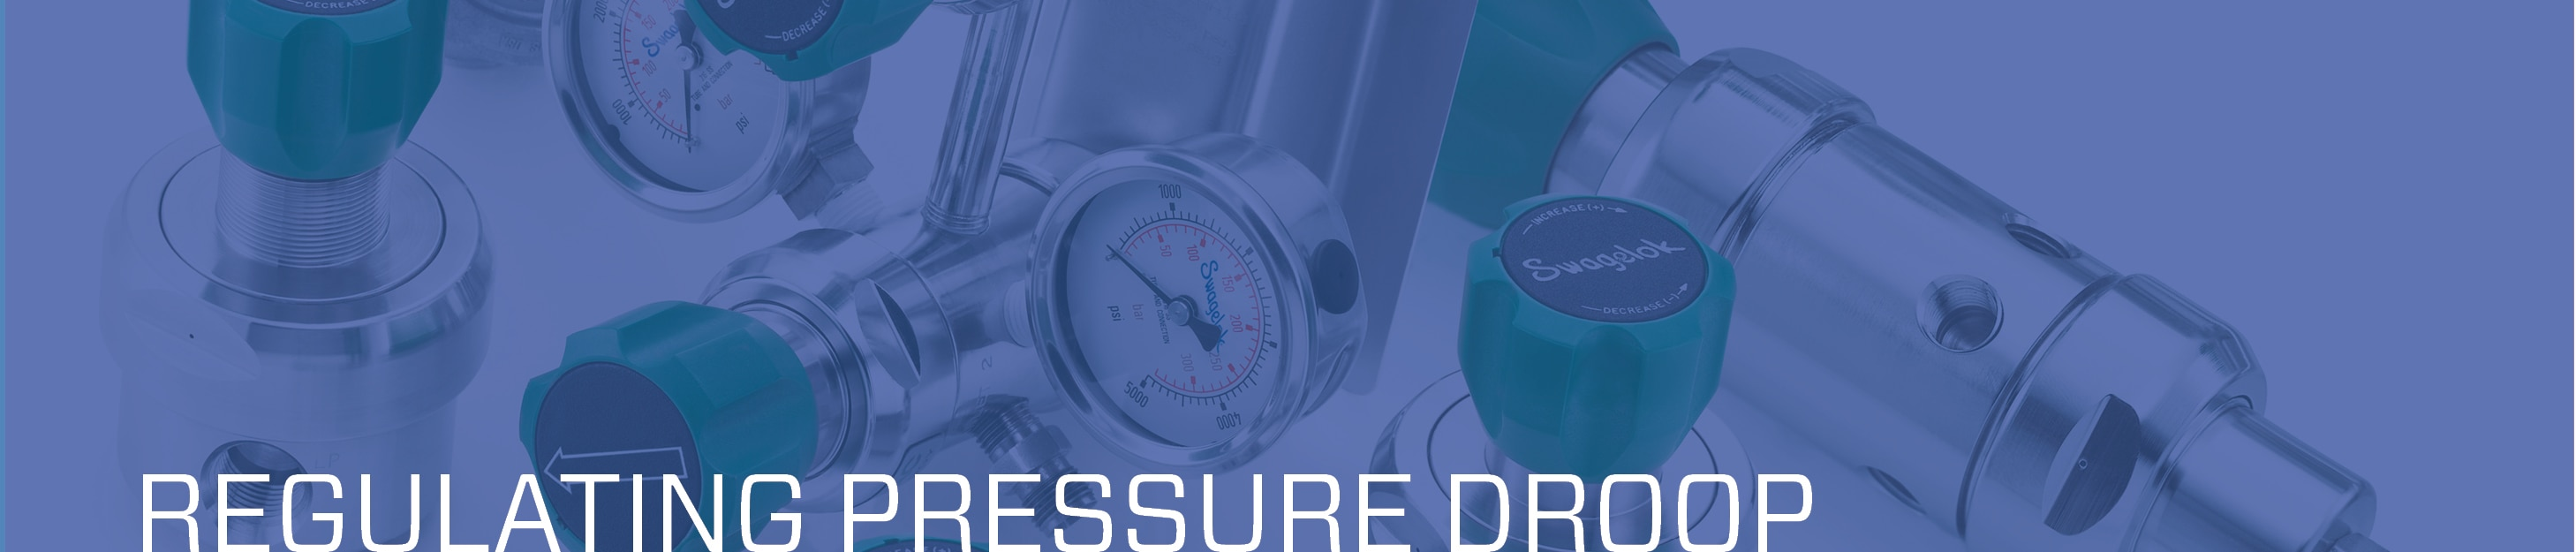 Regulating Pressure Droop